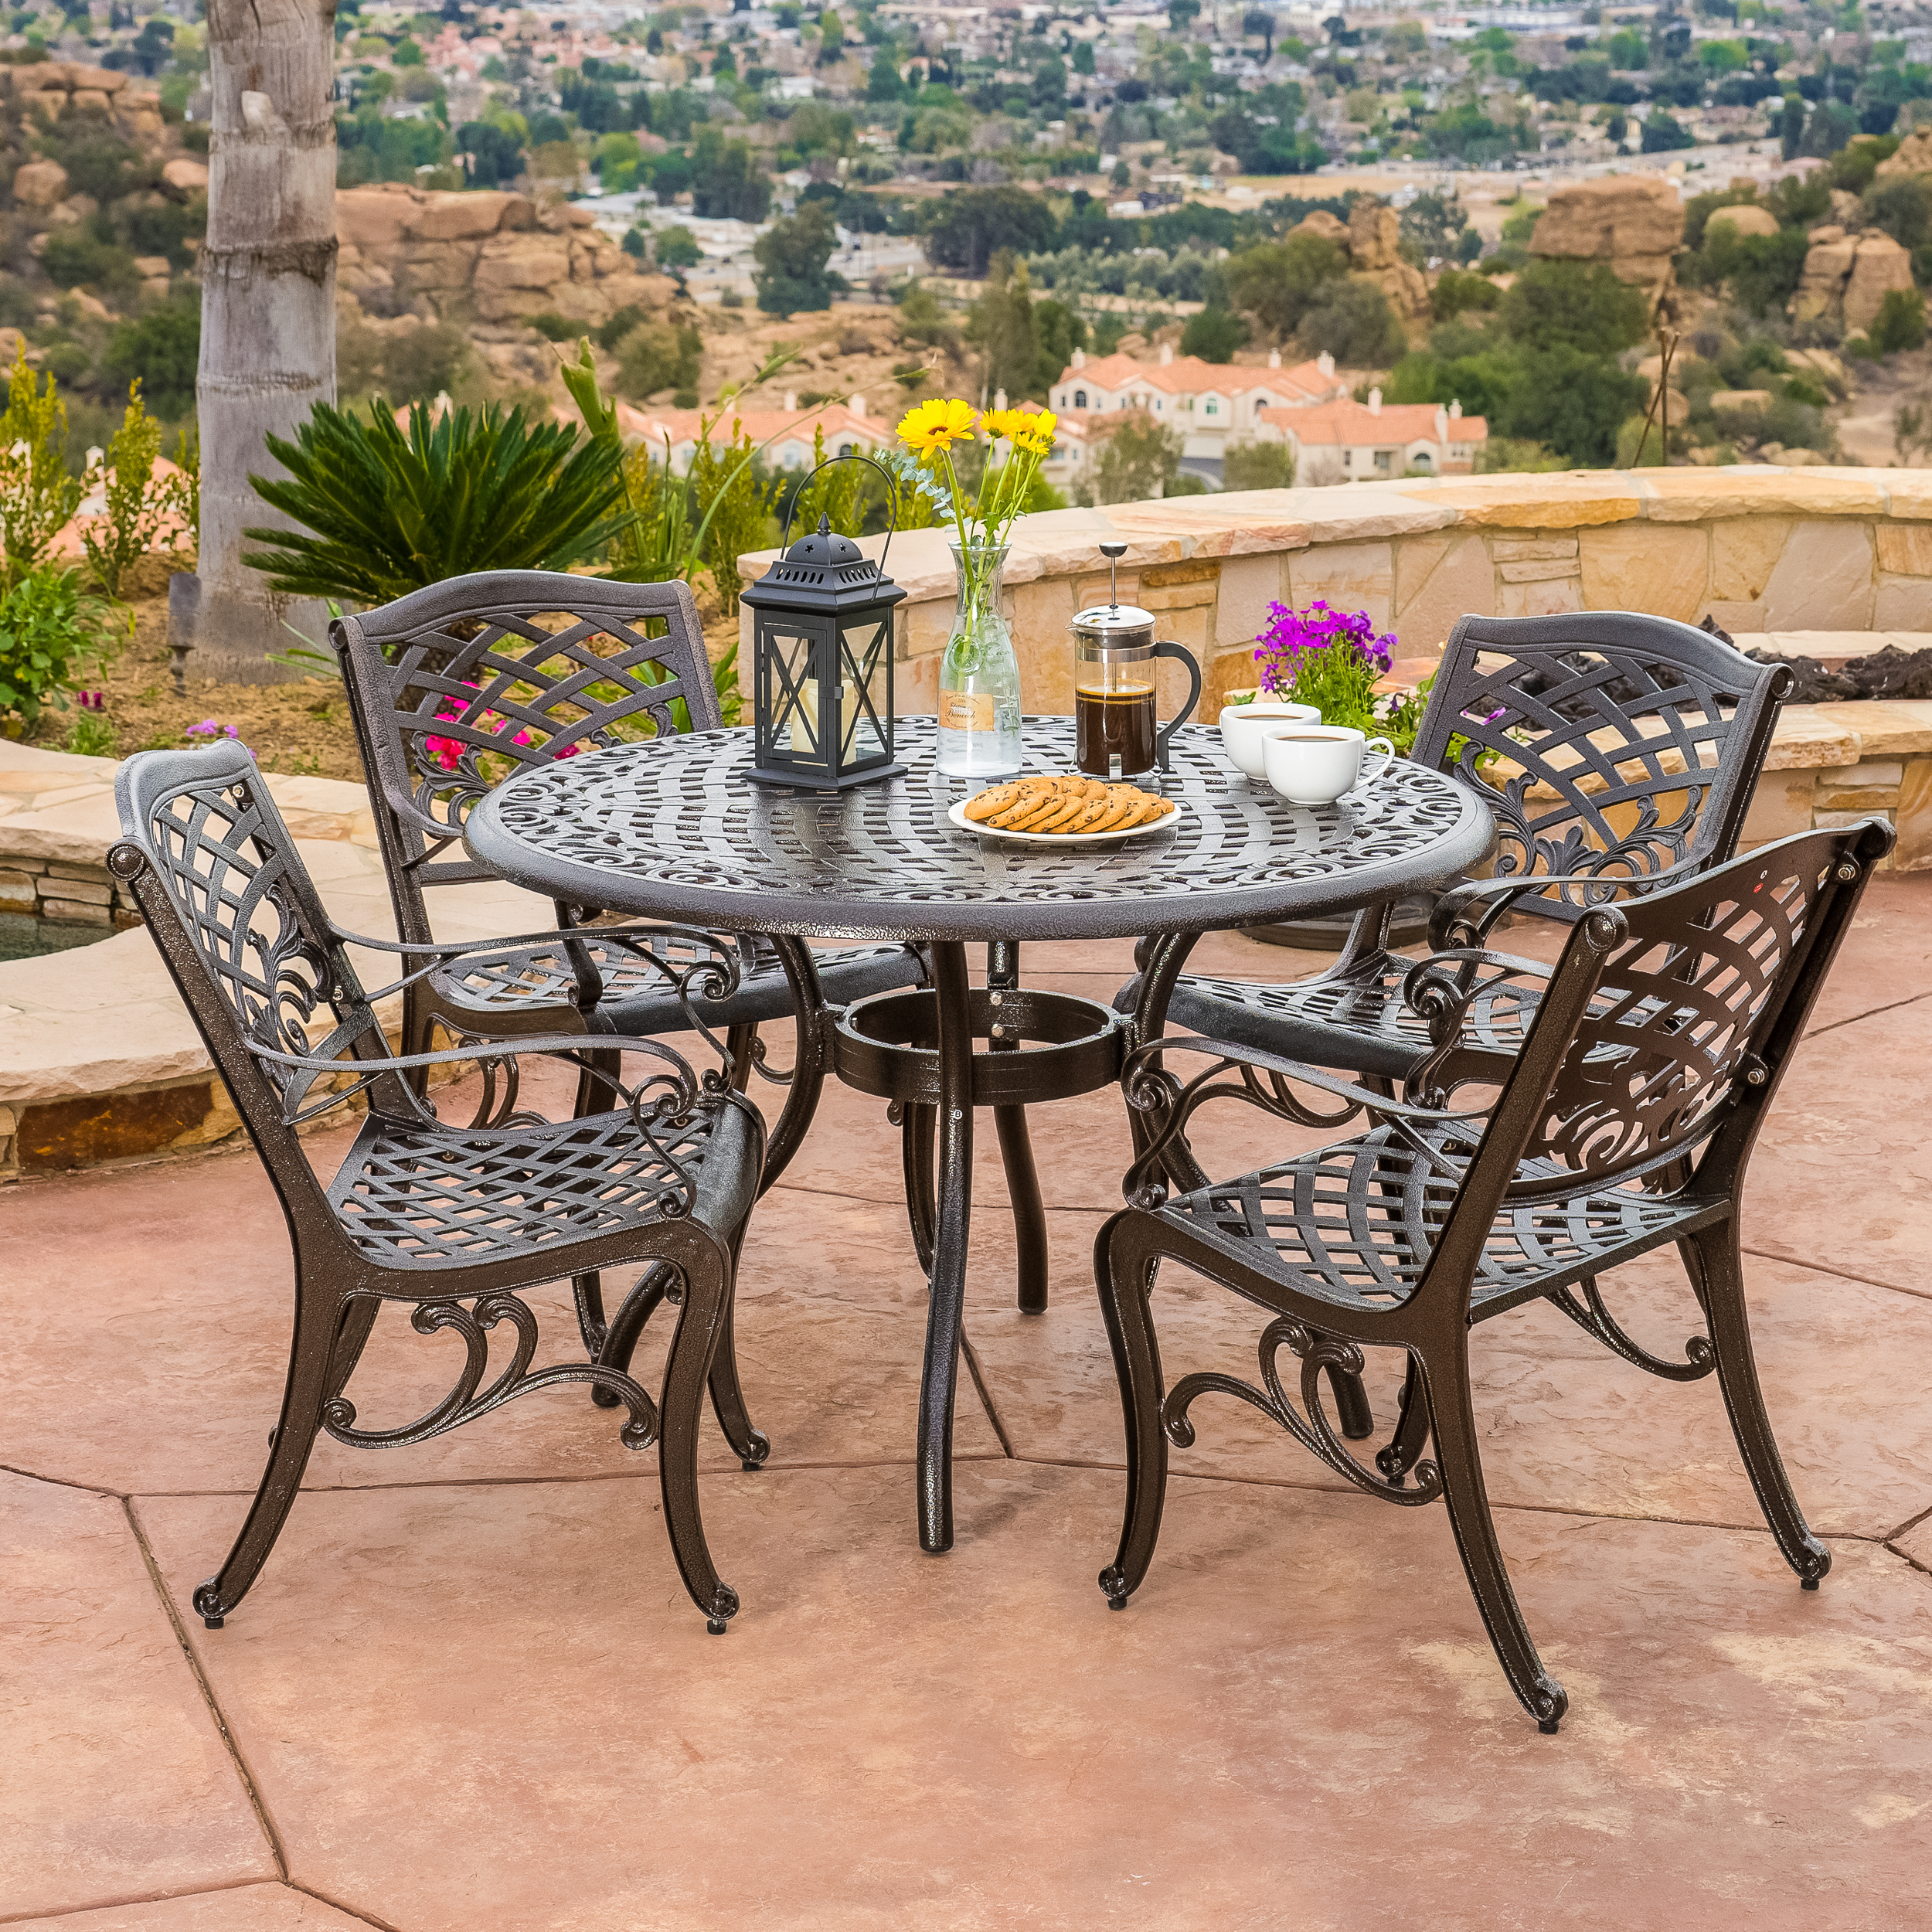 Bon Outdoor 5 Piece Cast Aluminum Outdoor Dining Set, Bronze